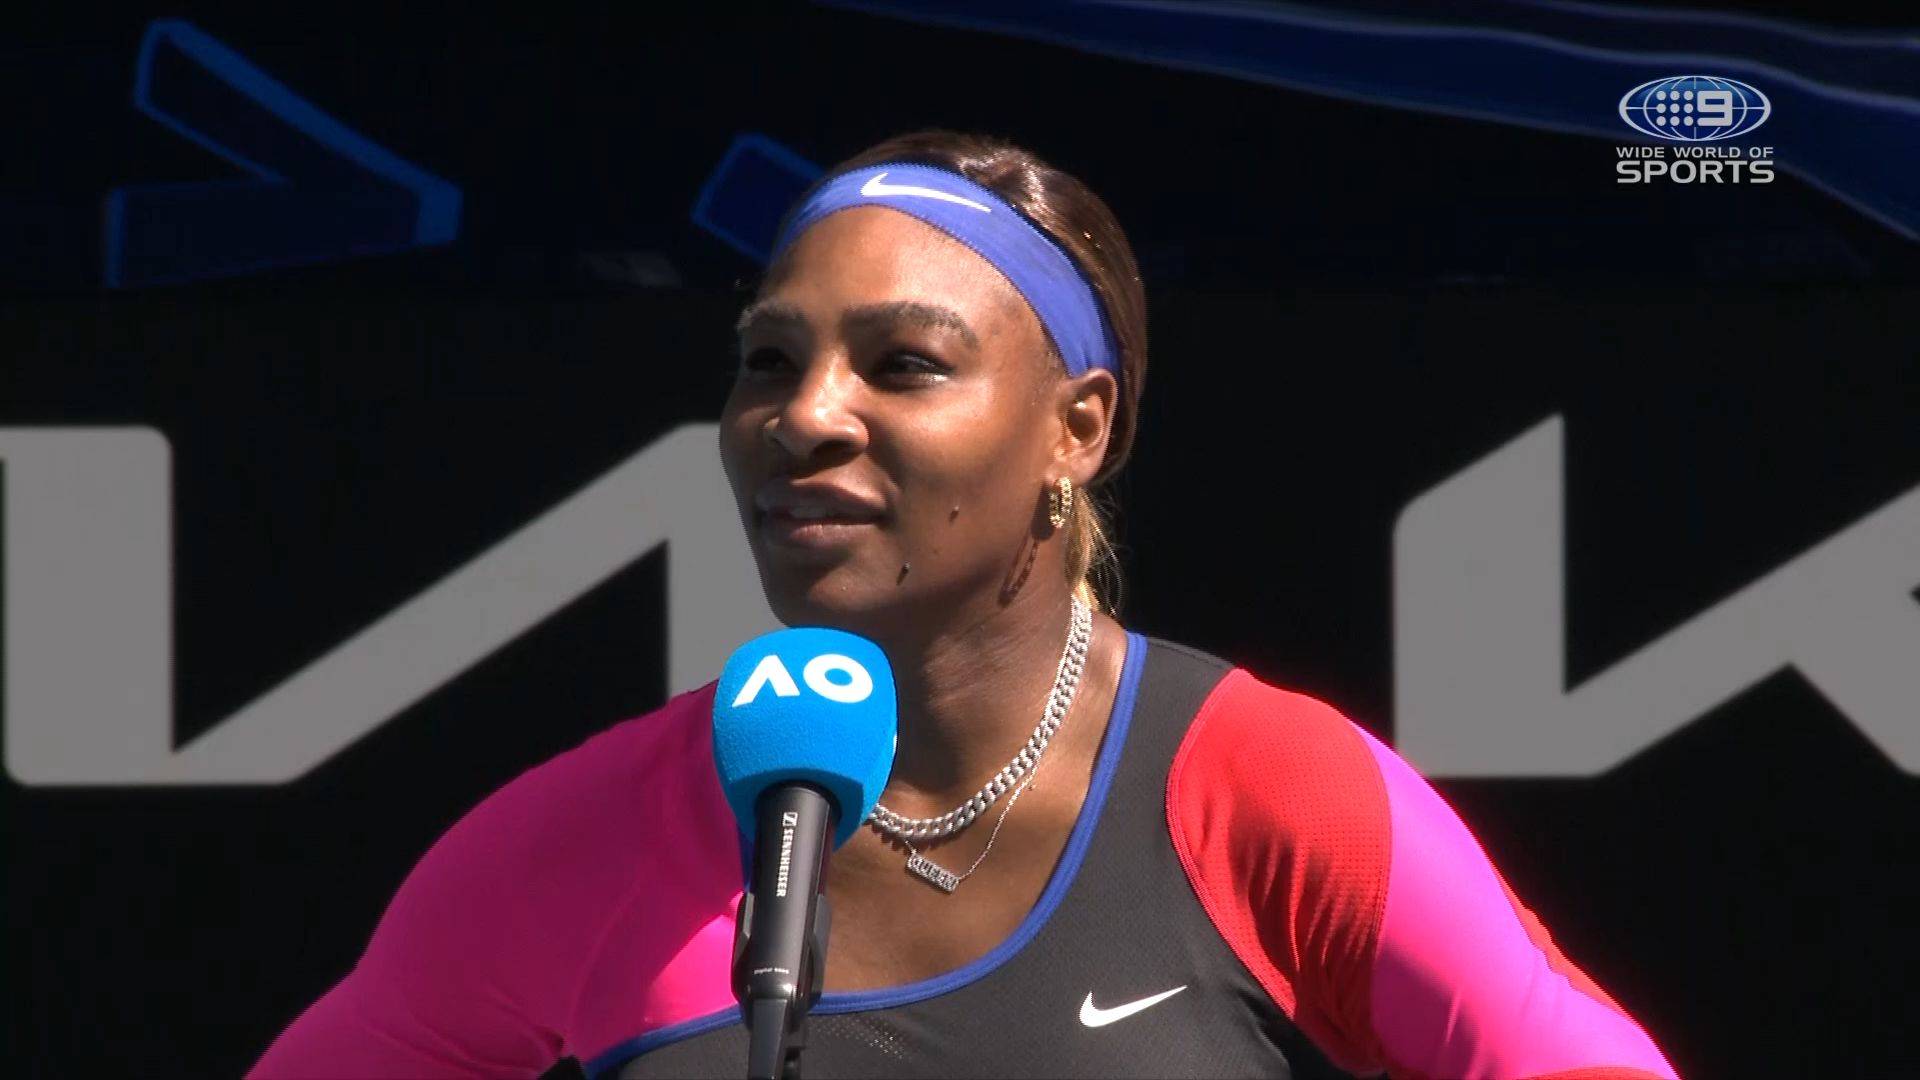 Serena Williams pays tribute to sister Venus, reveals Valentine's Day stance after win